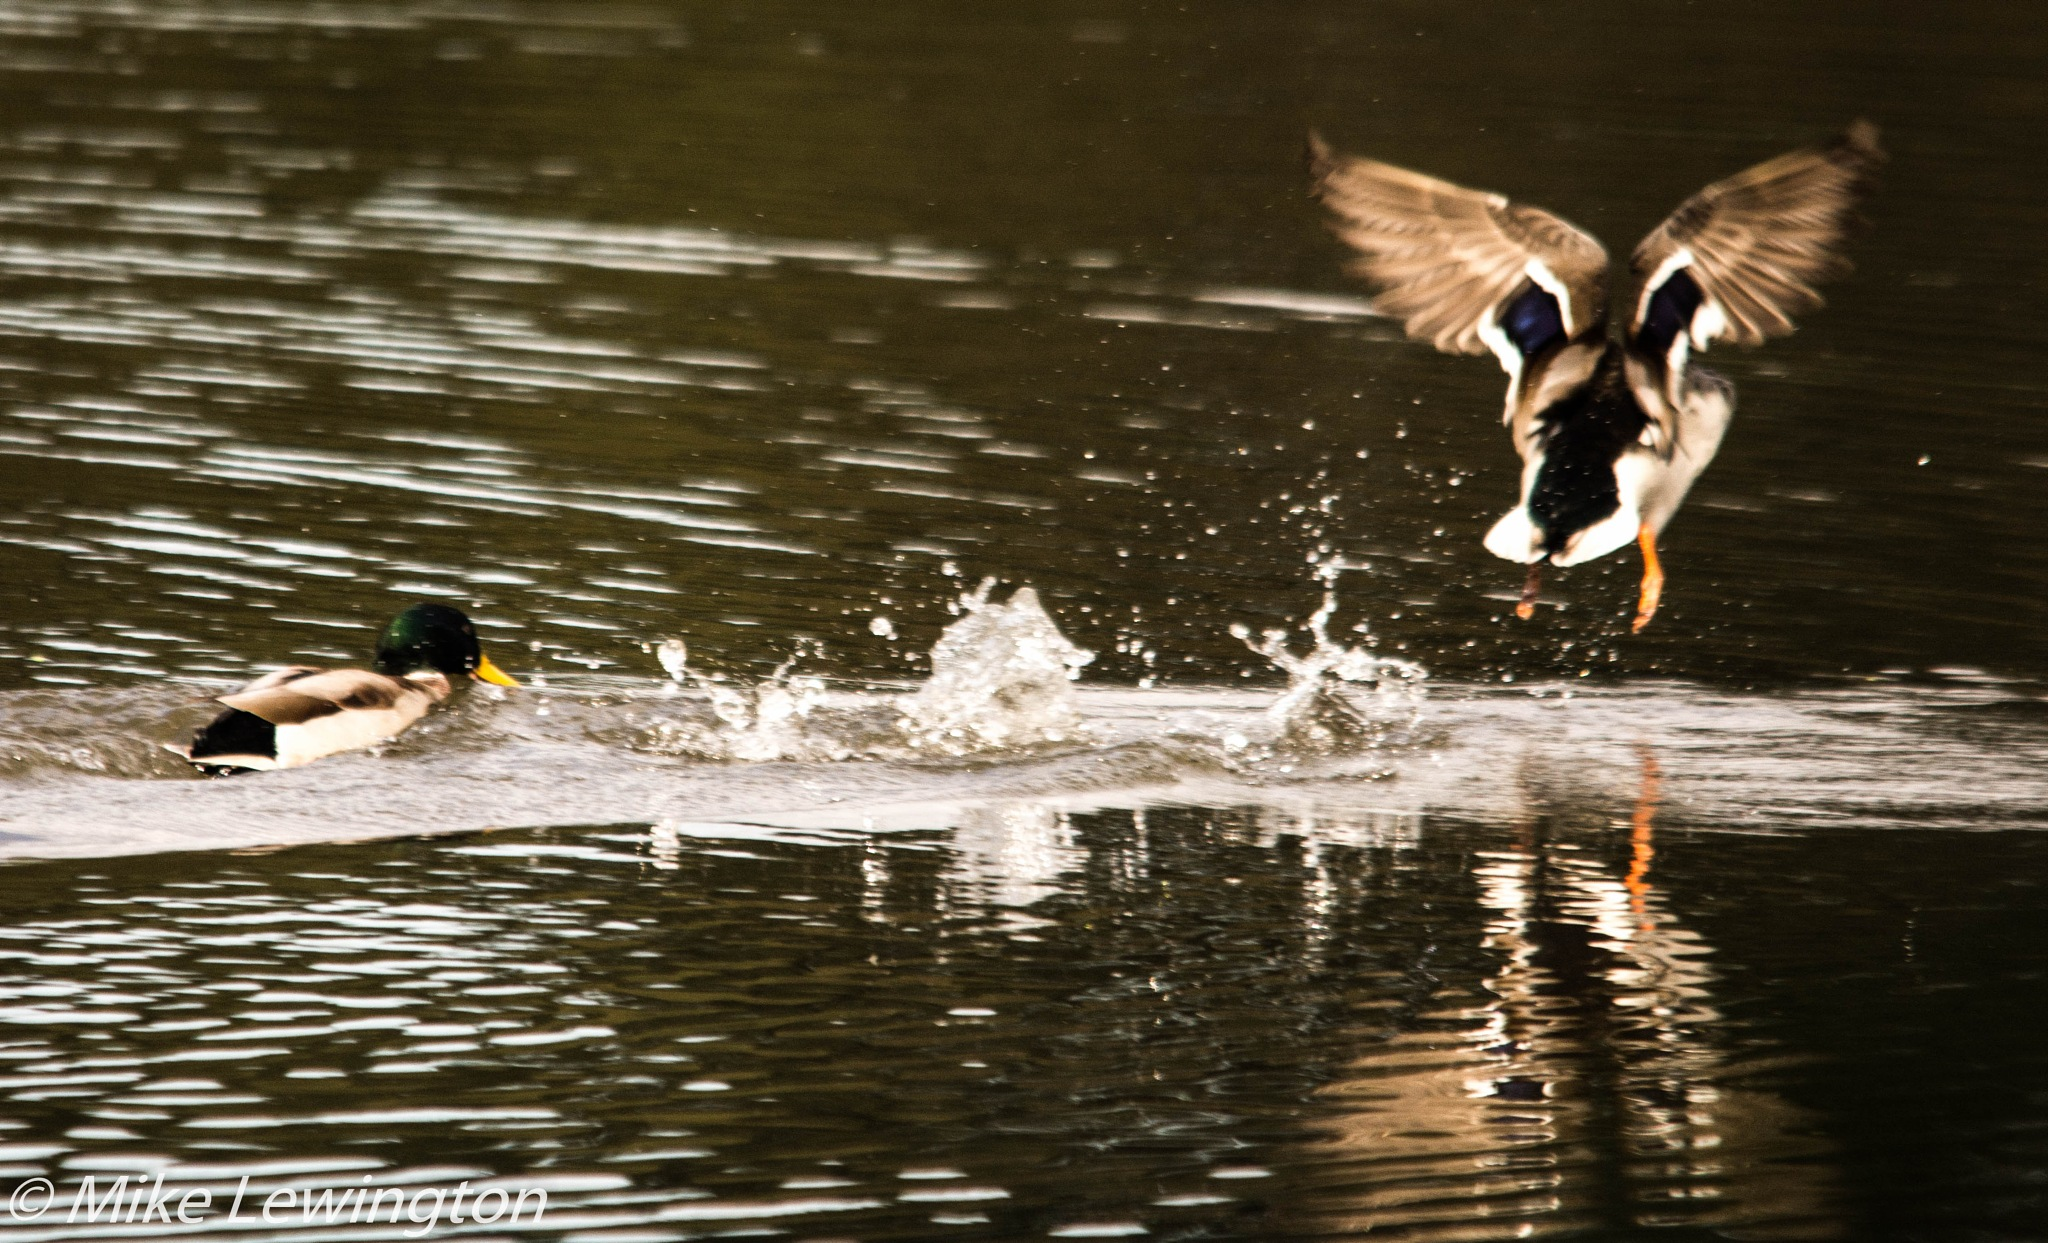 Untitled by Mike Lewington